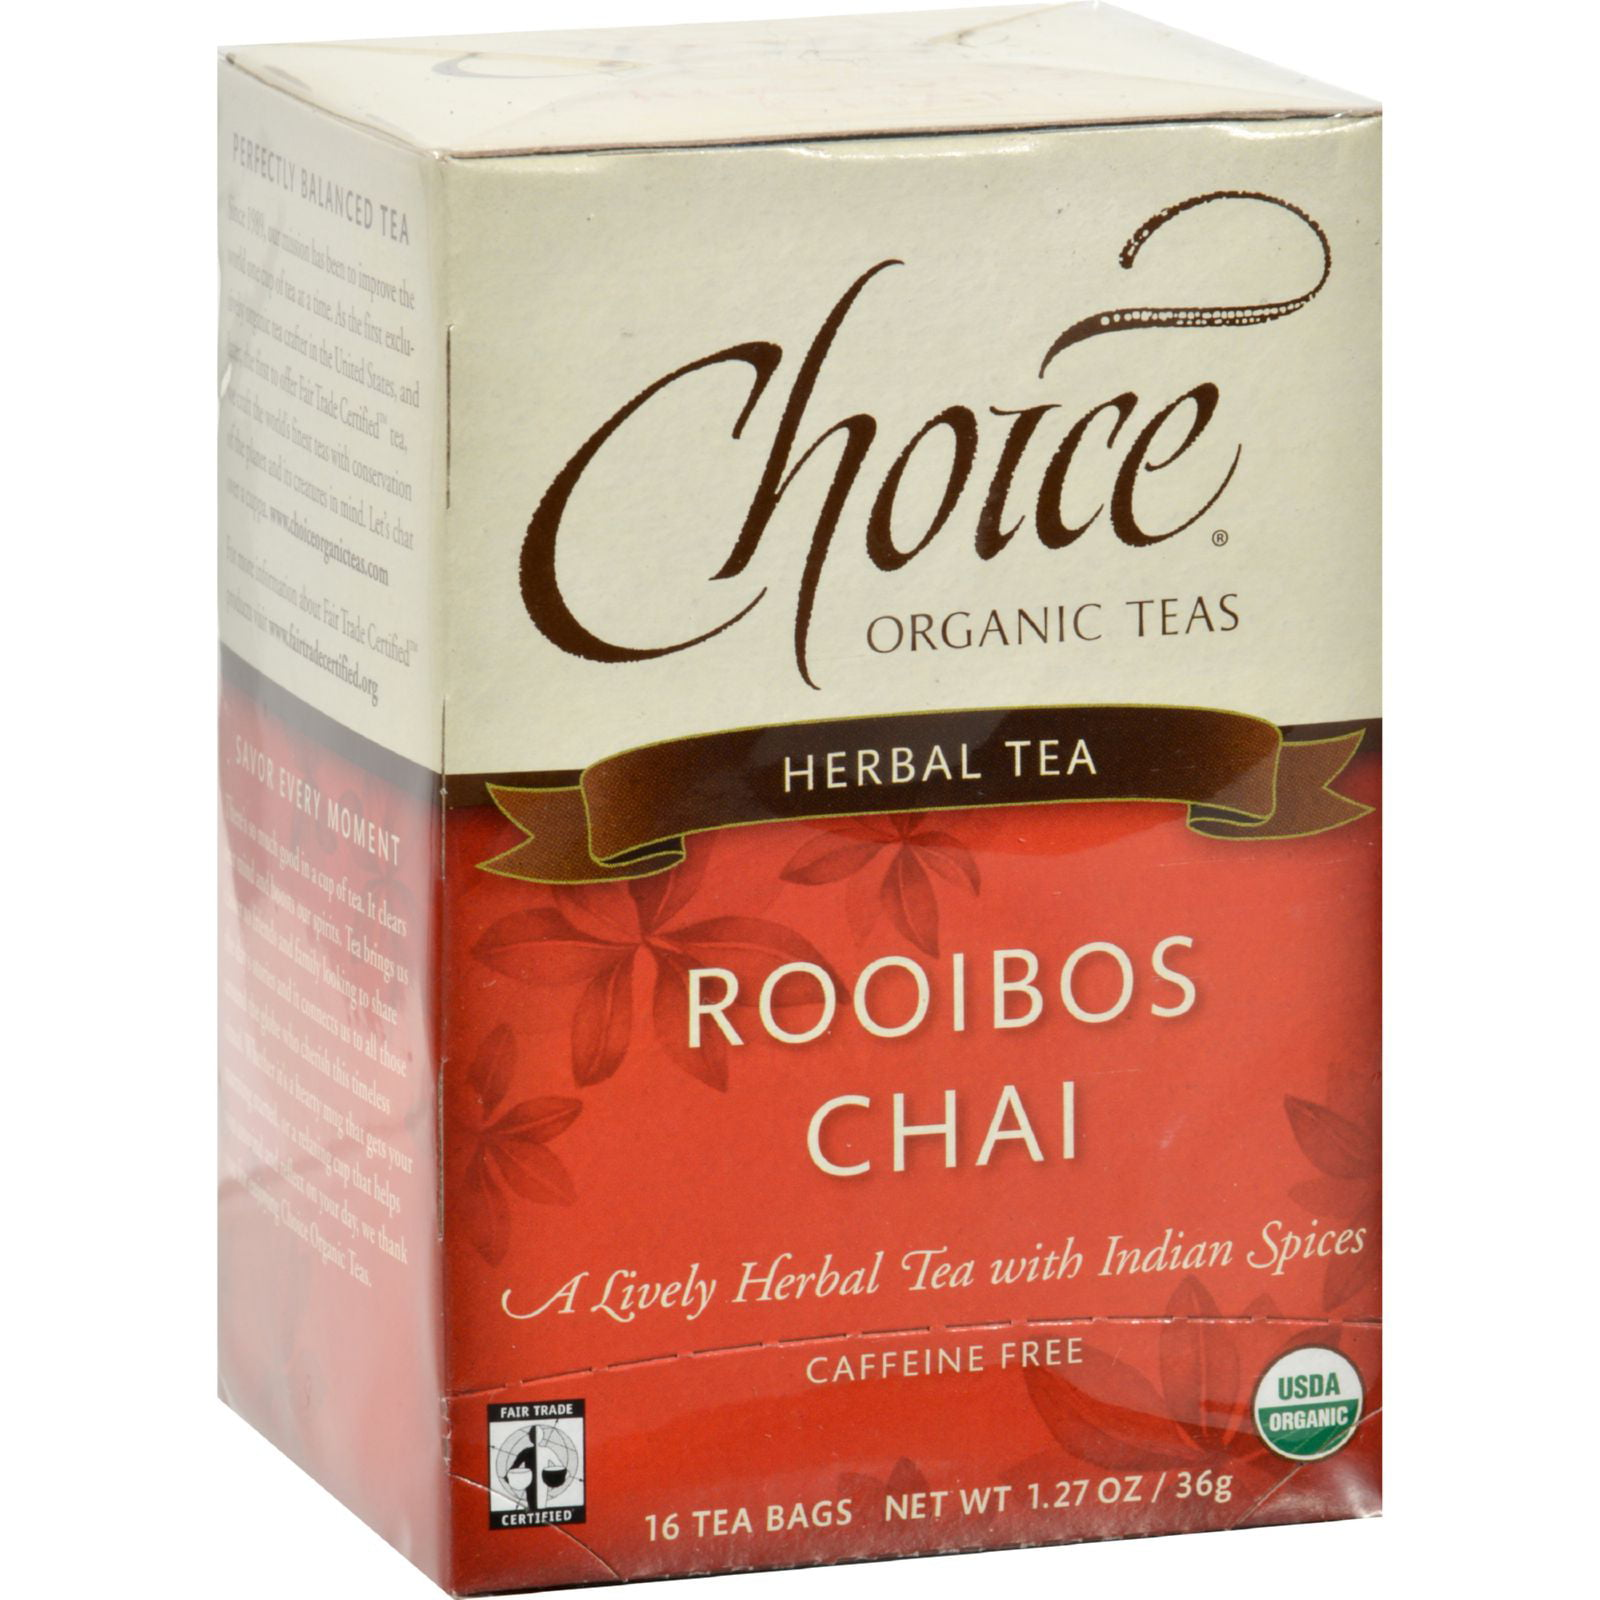 Choice Organic Teas Herbal Tea Rooibos Chai Caffeine Free Case of 6 16 Bags by U-Nutra